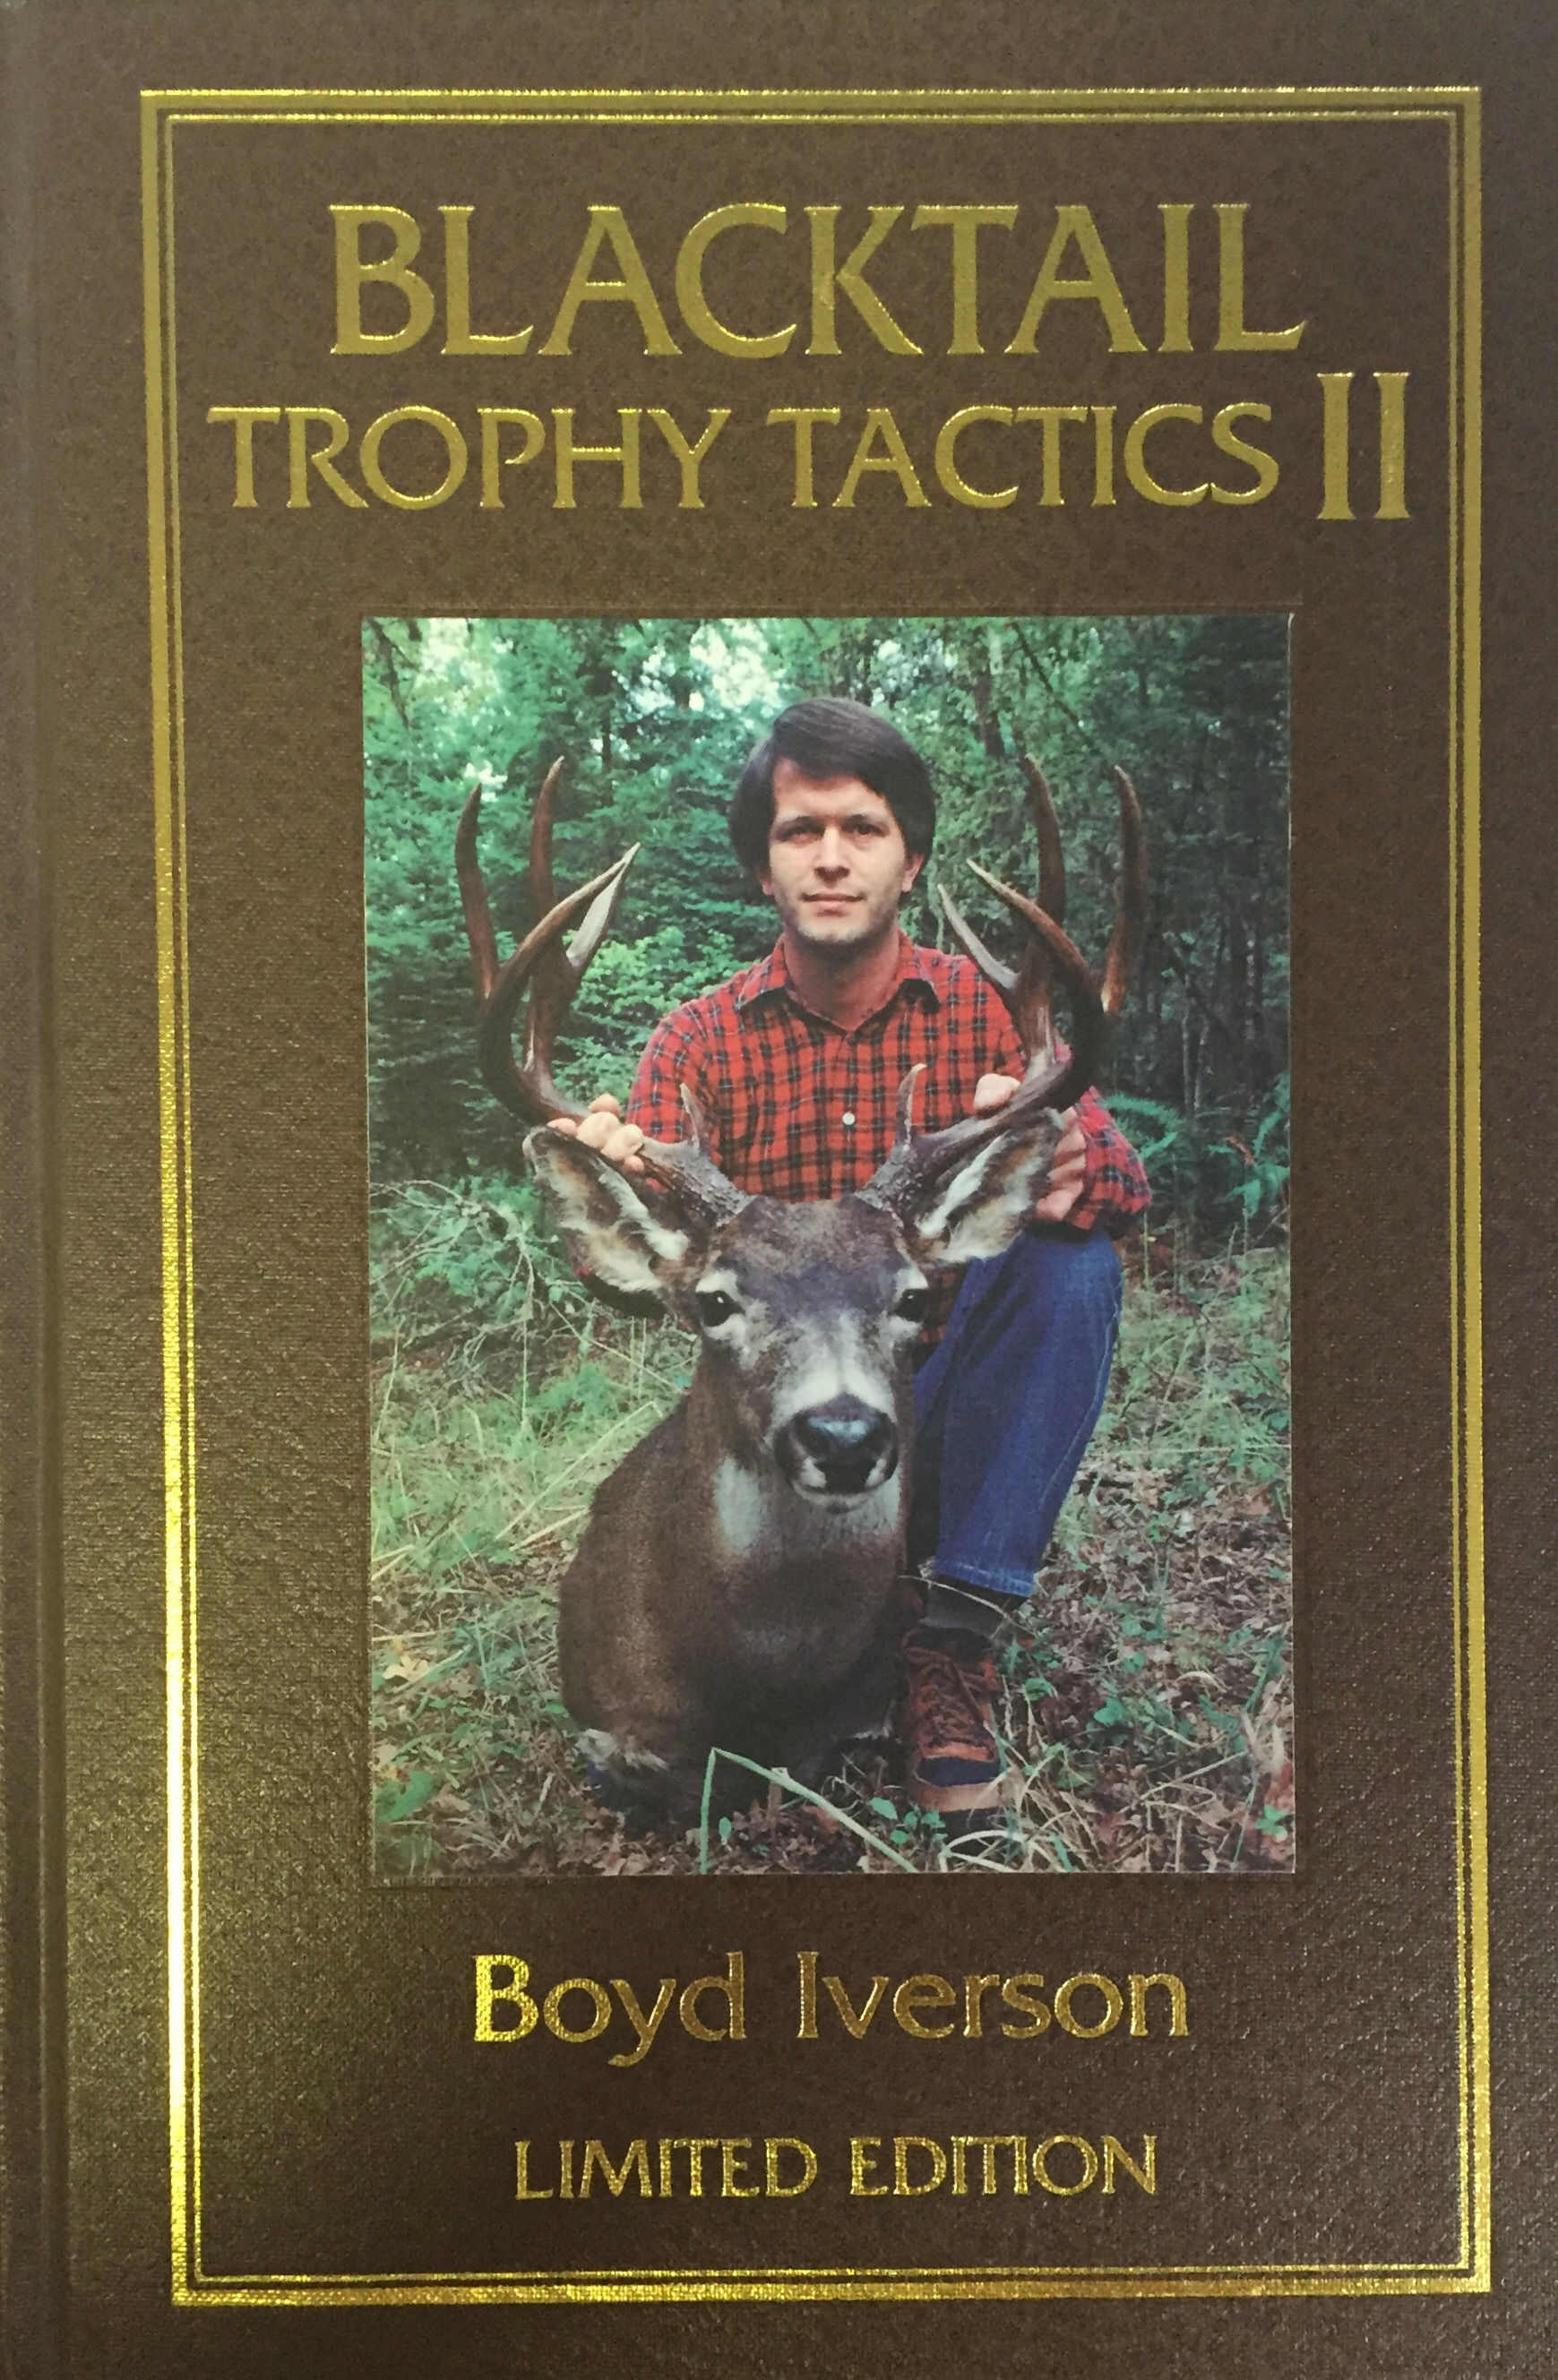 Blacktail Trophy Tactics II - Hardcover